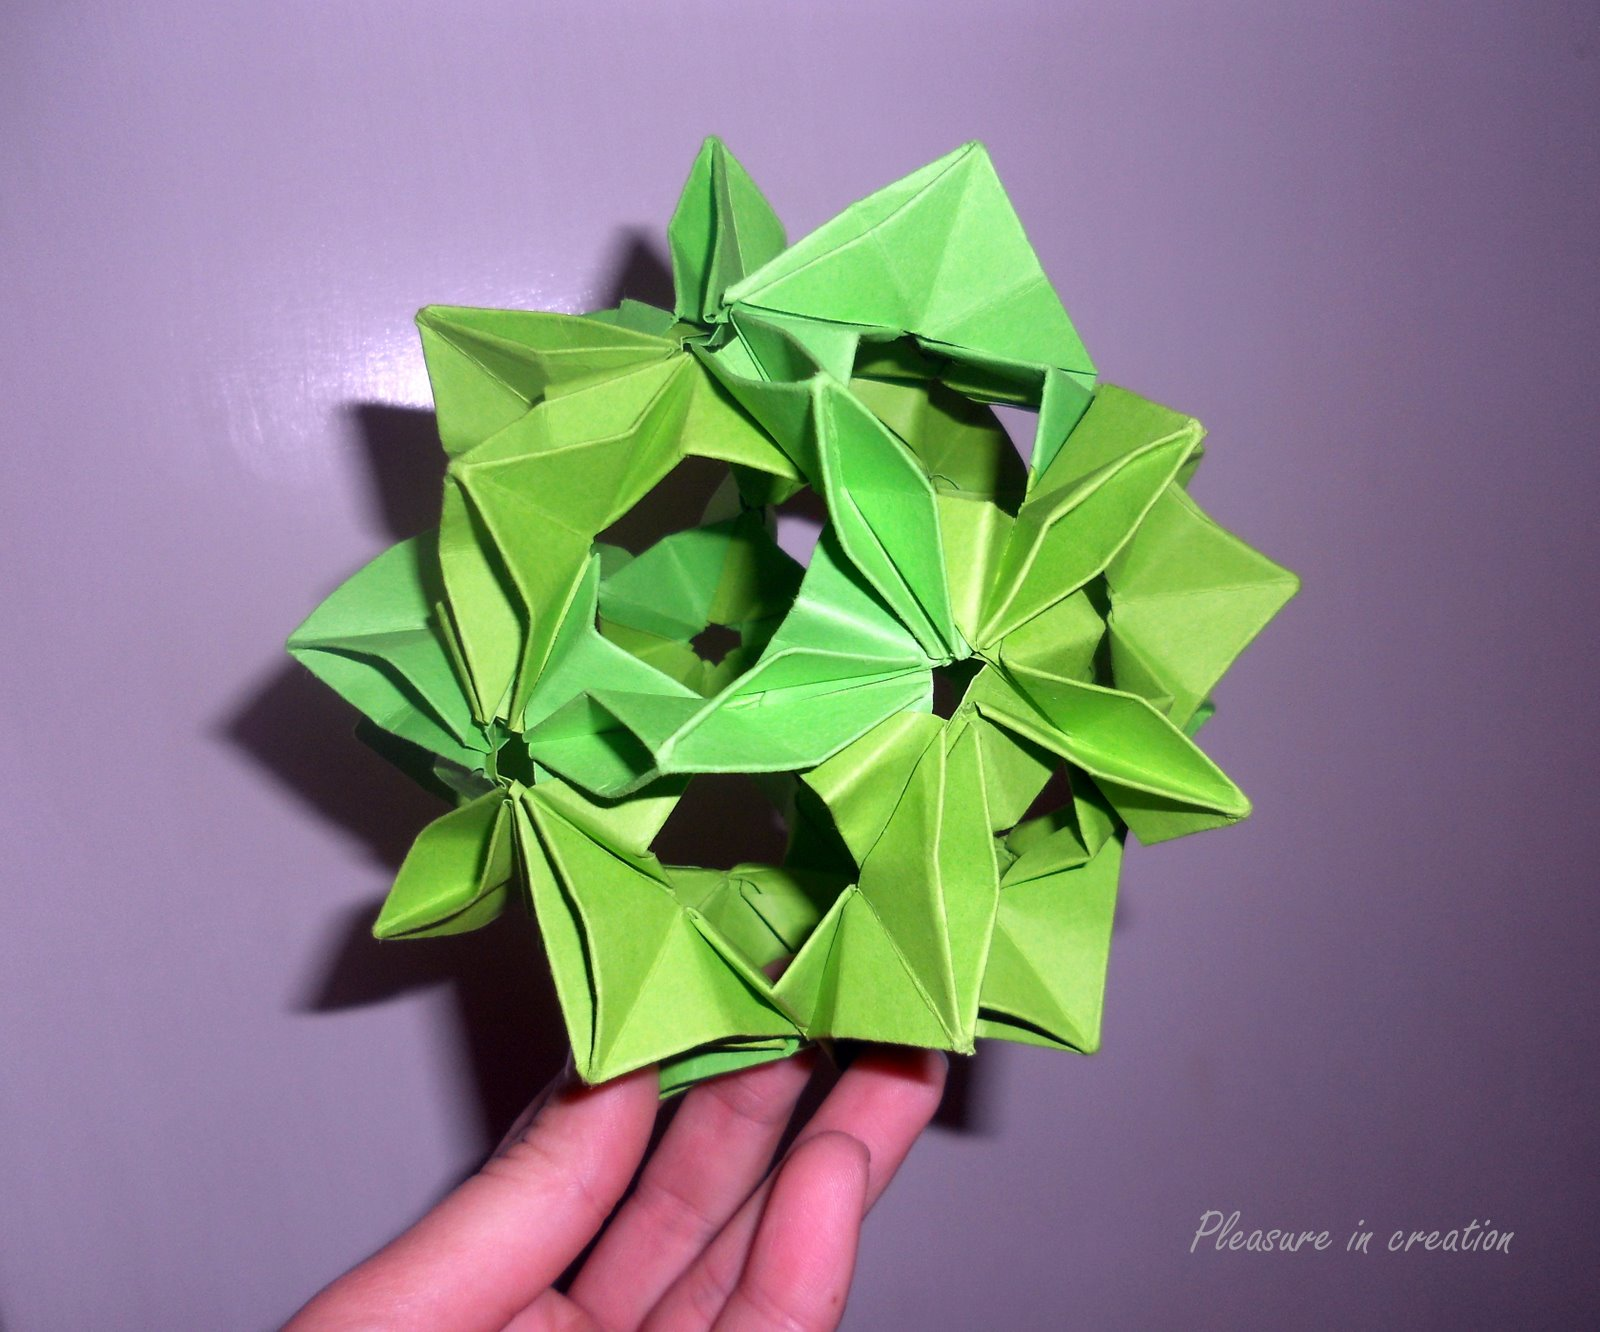 Its Also Called Kusudama But The Technique Of Making It Is Totally Different This Flower Ball Like Modular Origami Which Means You Make